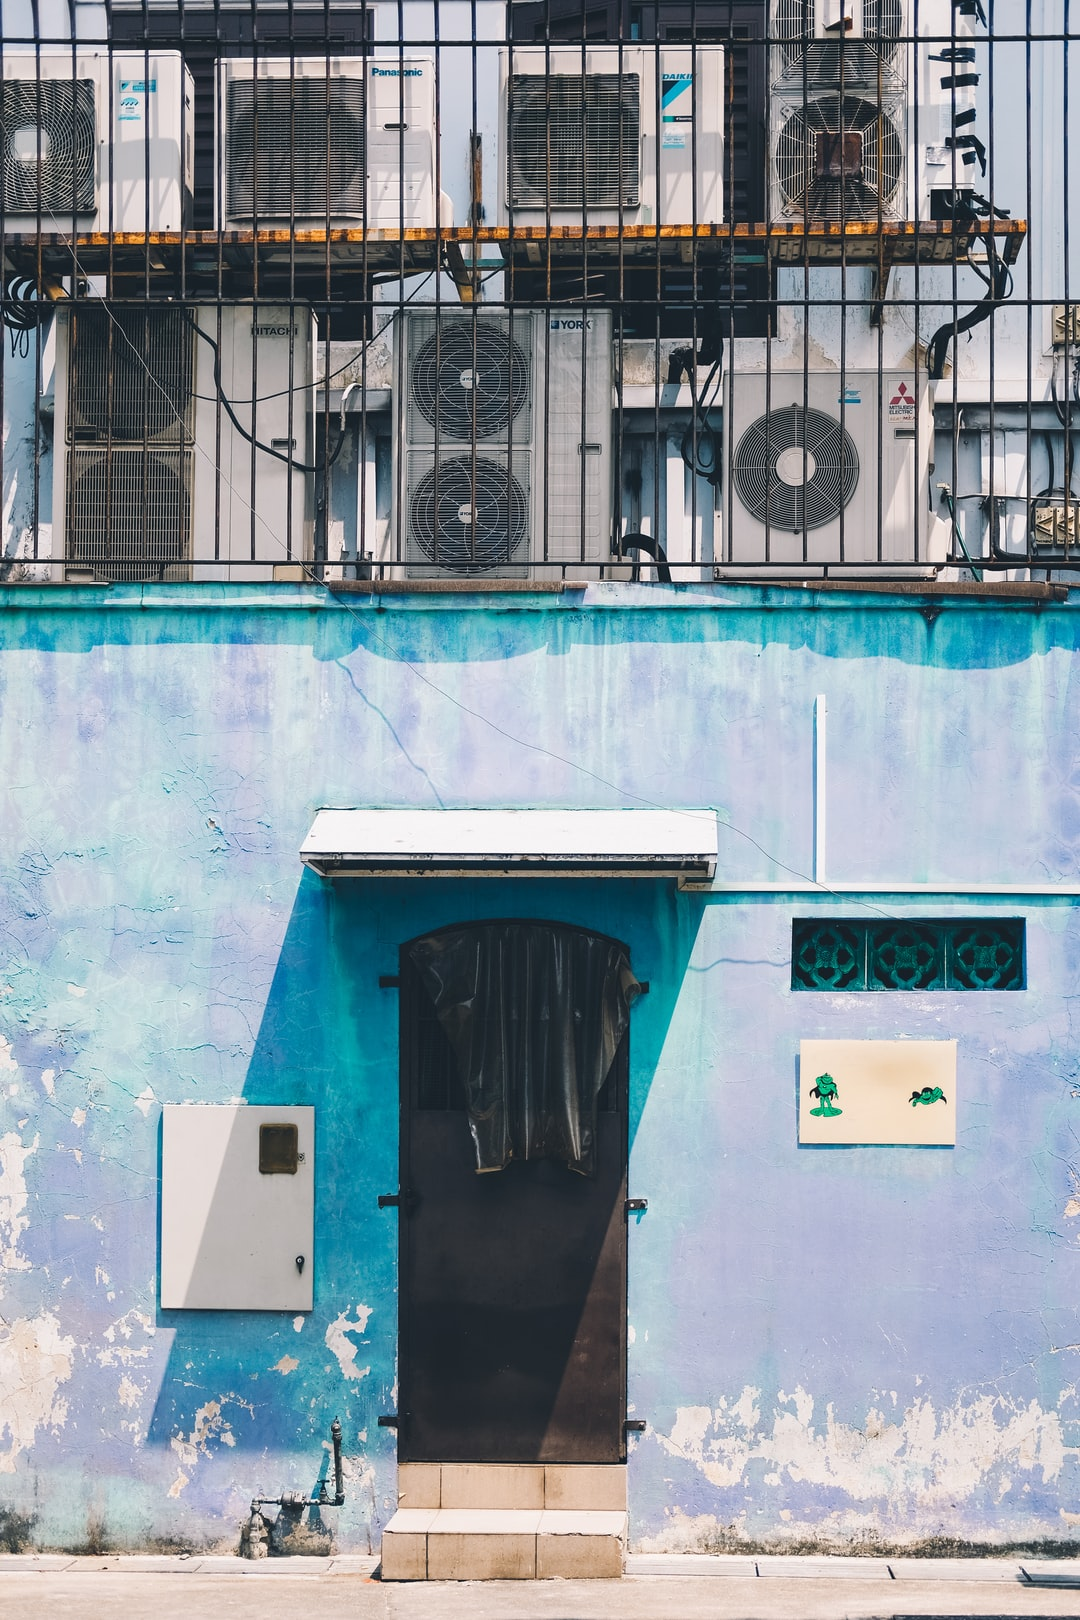 Another photo from the photowalk I did alone - I was supposed to head back home when I chanced upon this alleyway with really pretty blue walls and textures. Decided to make a short detour to take a picture of it because I really love how the blue is like here.